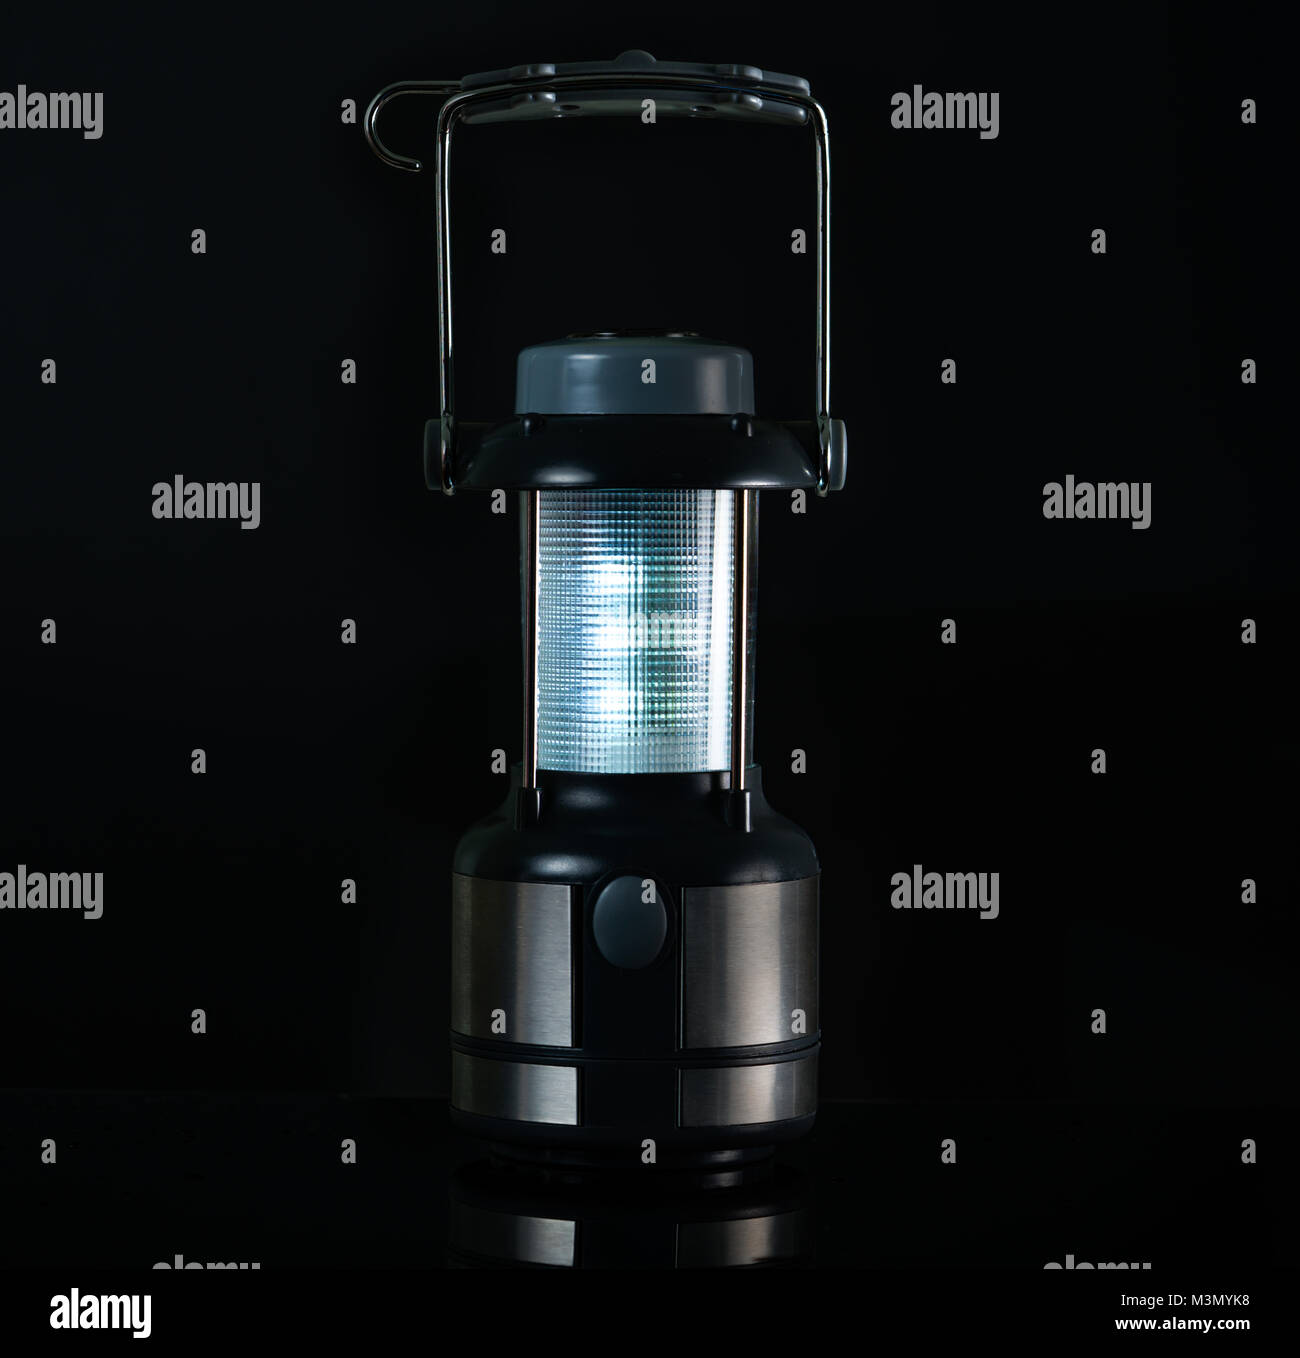 Camping lamp isolated on white background with copy space for text. Electric LED lantern with compass and handle - Stock Image